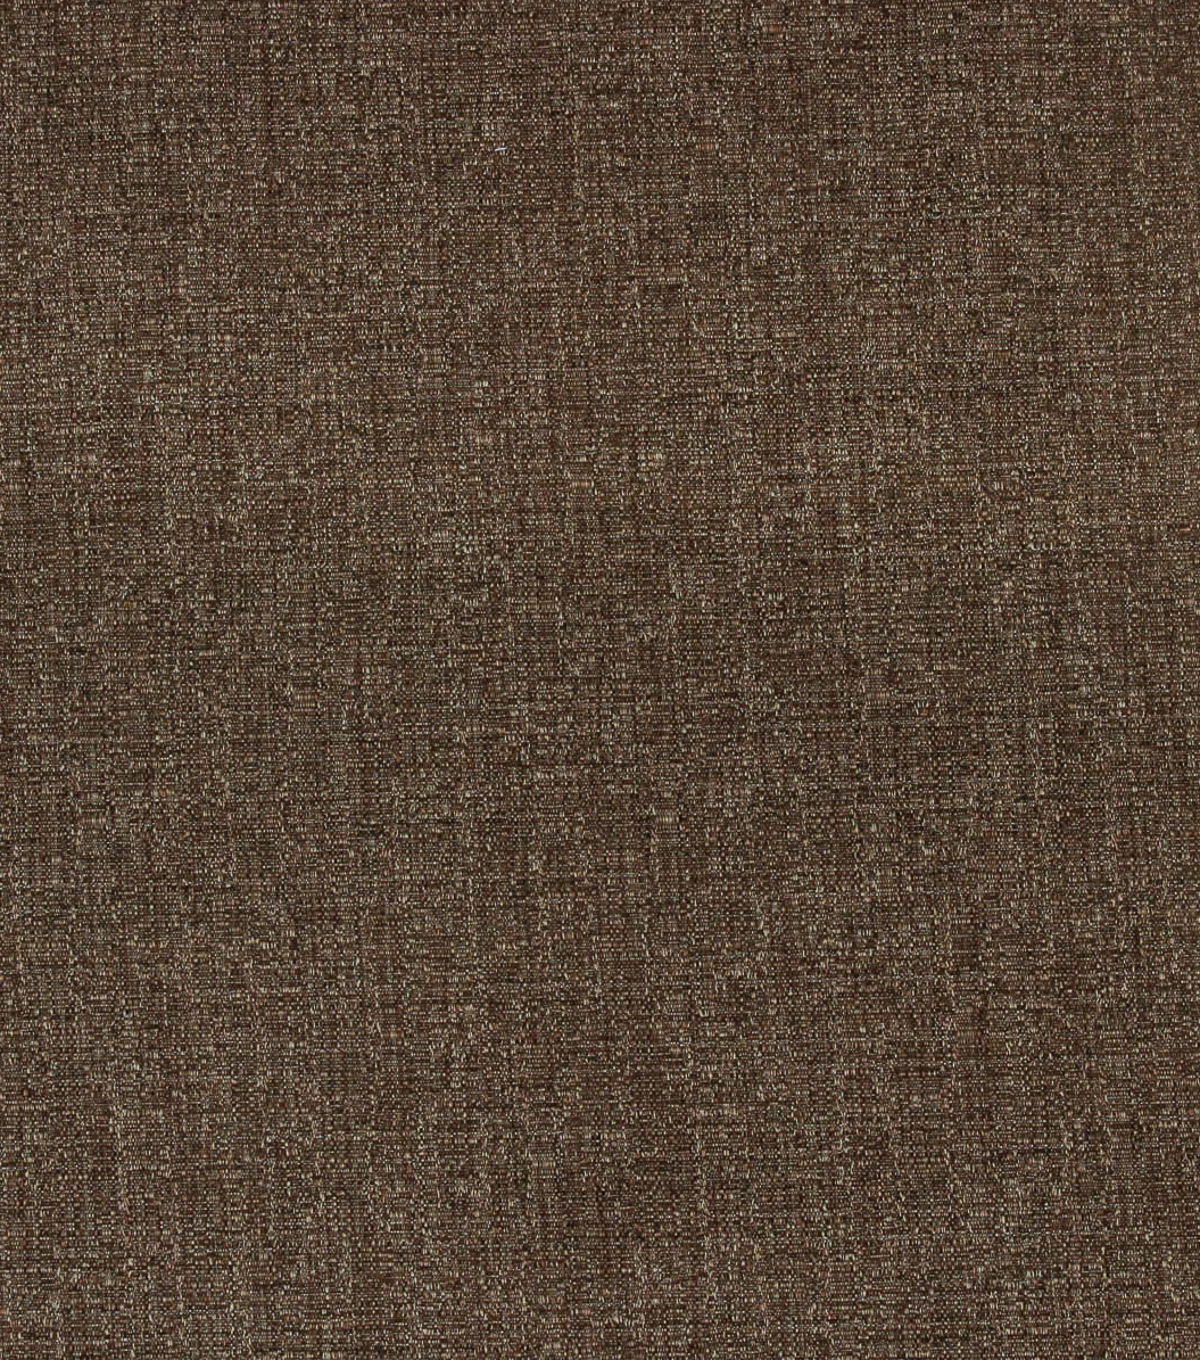 Richloom Studio Multi-Purpose Decor Fabric 55\u0022-Hightower/Toasted Pecan